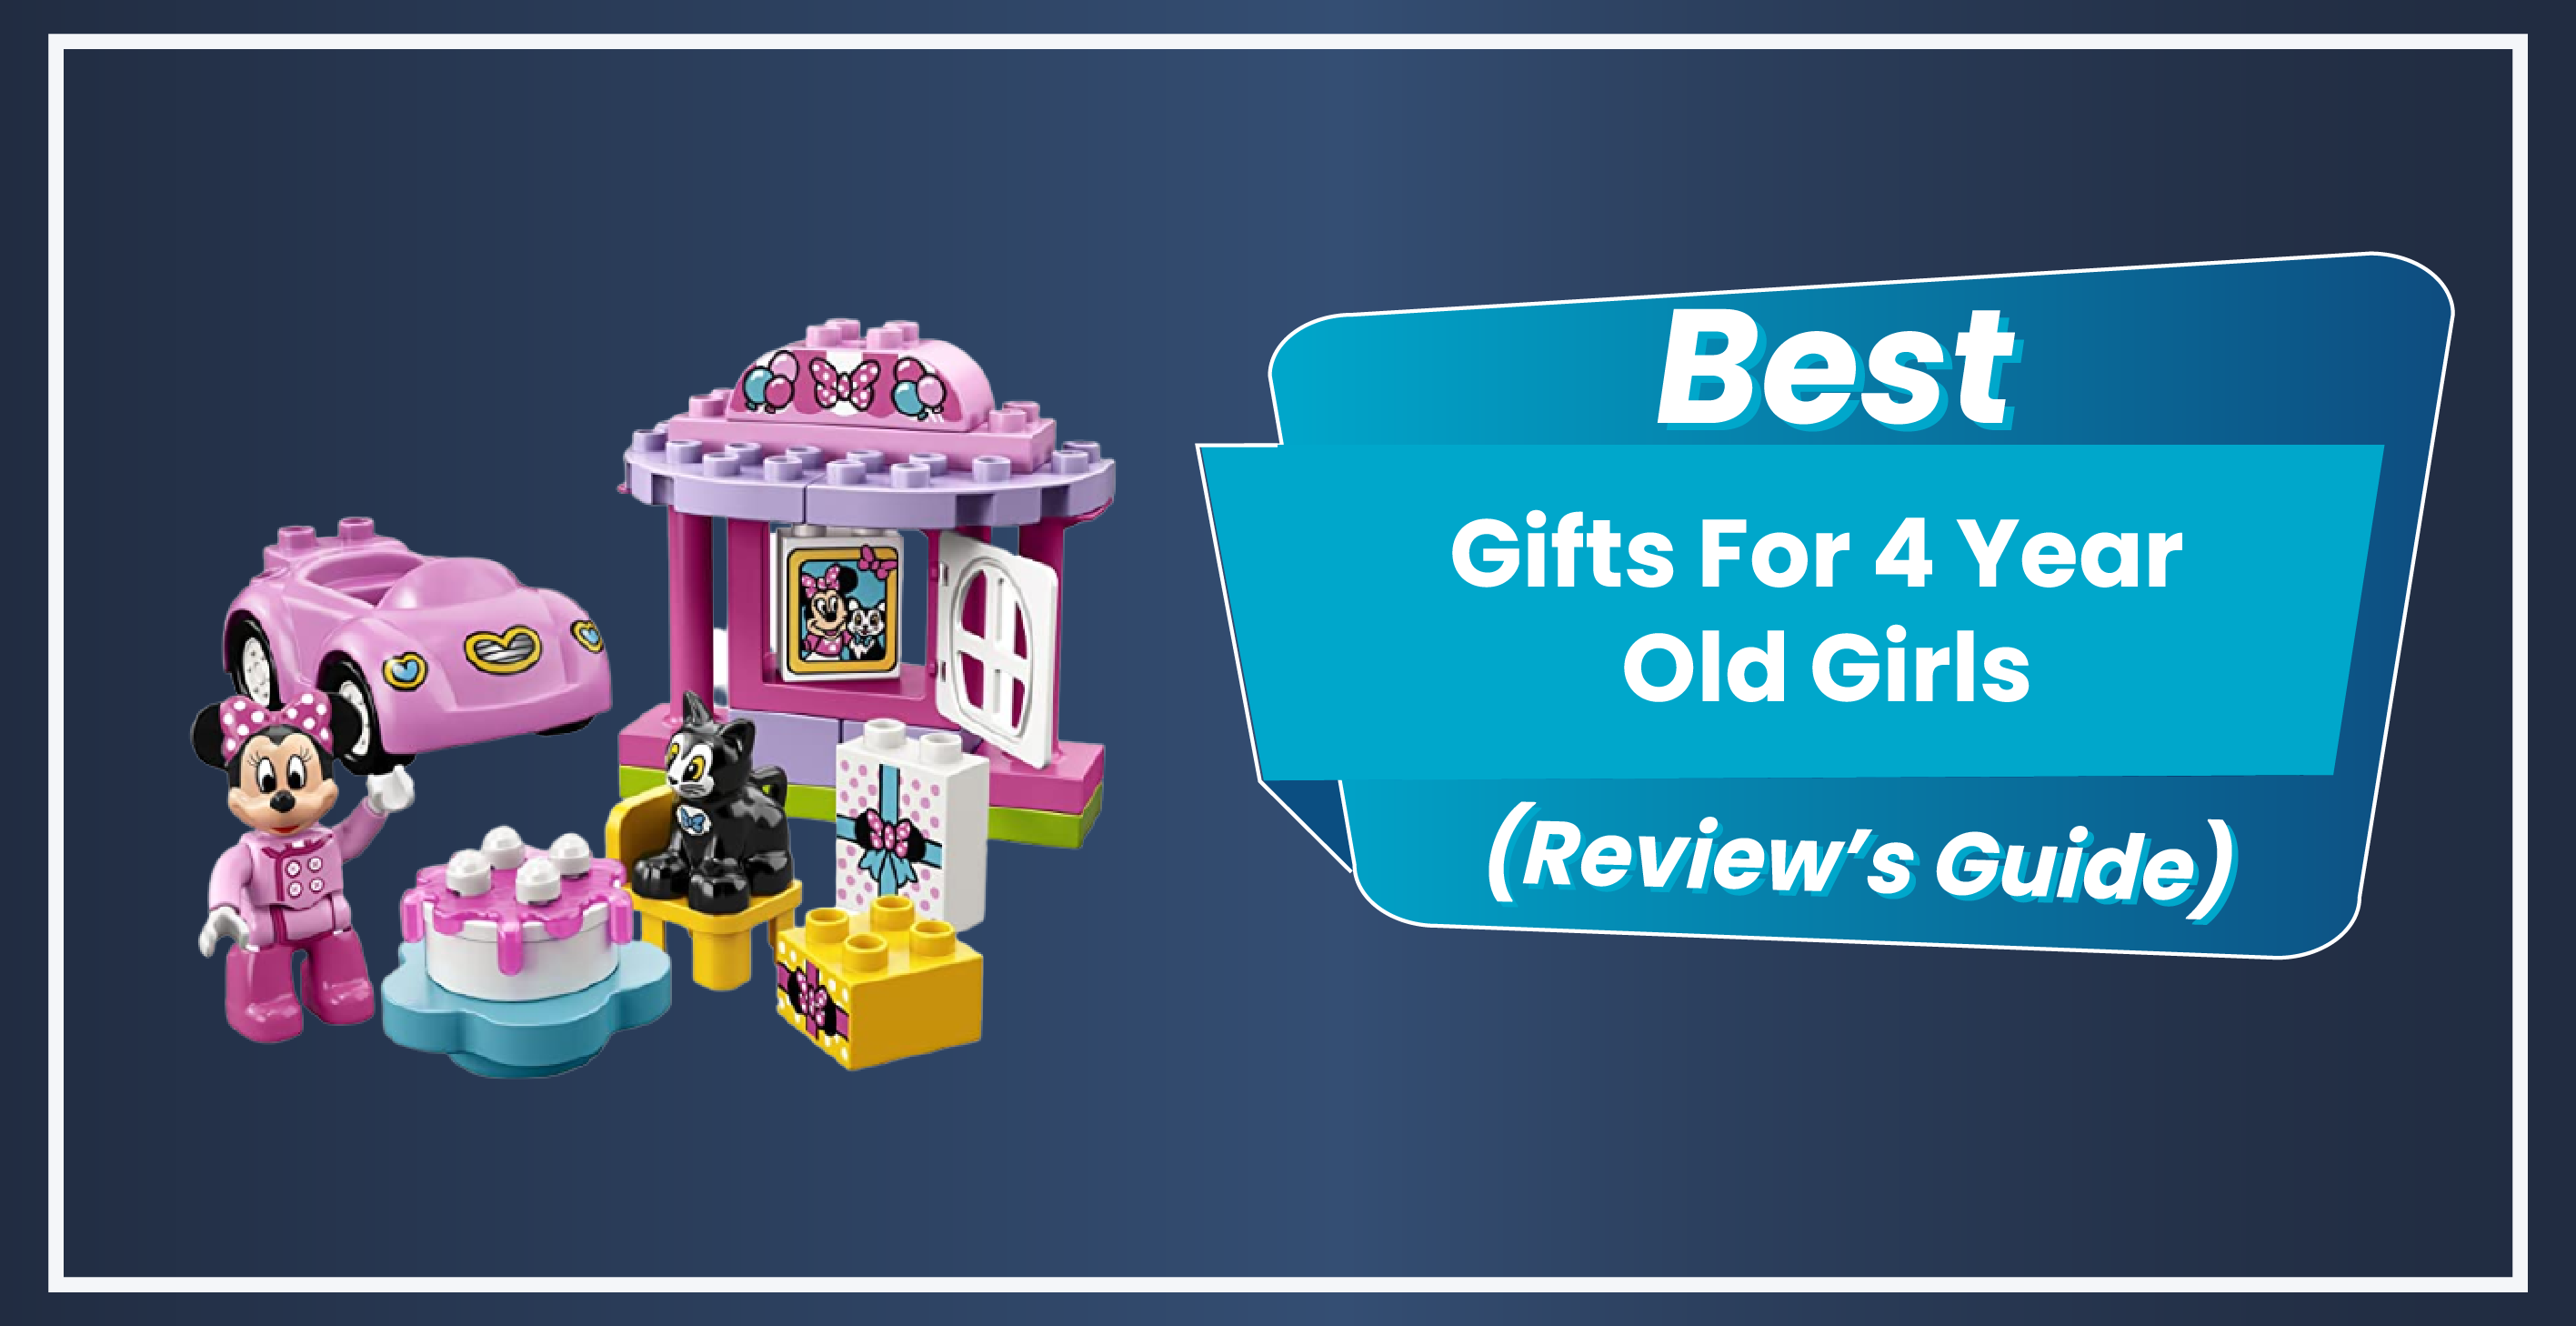 12 Best Toys and Gift Ideas For 4 Year Old Girls